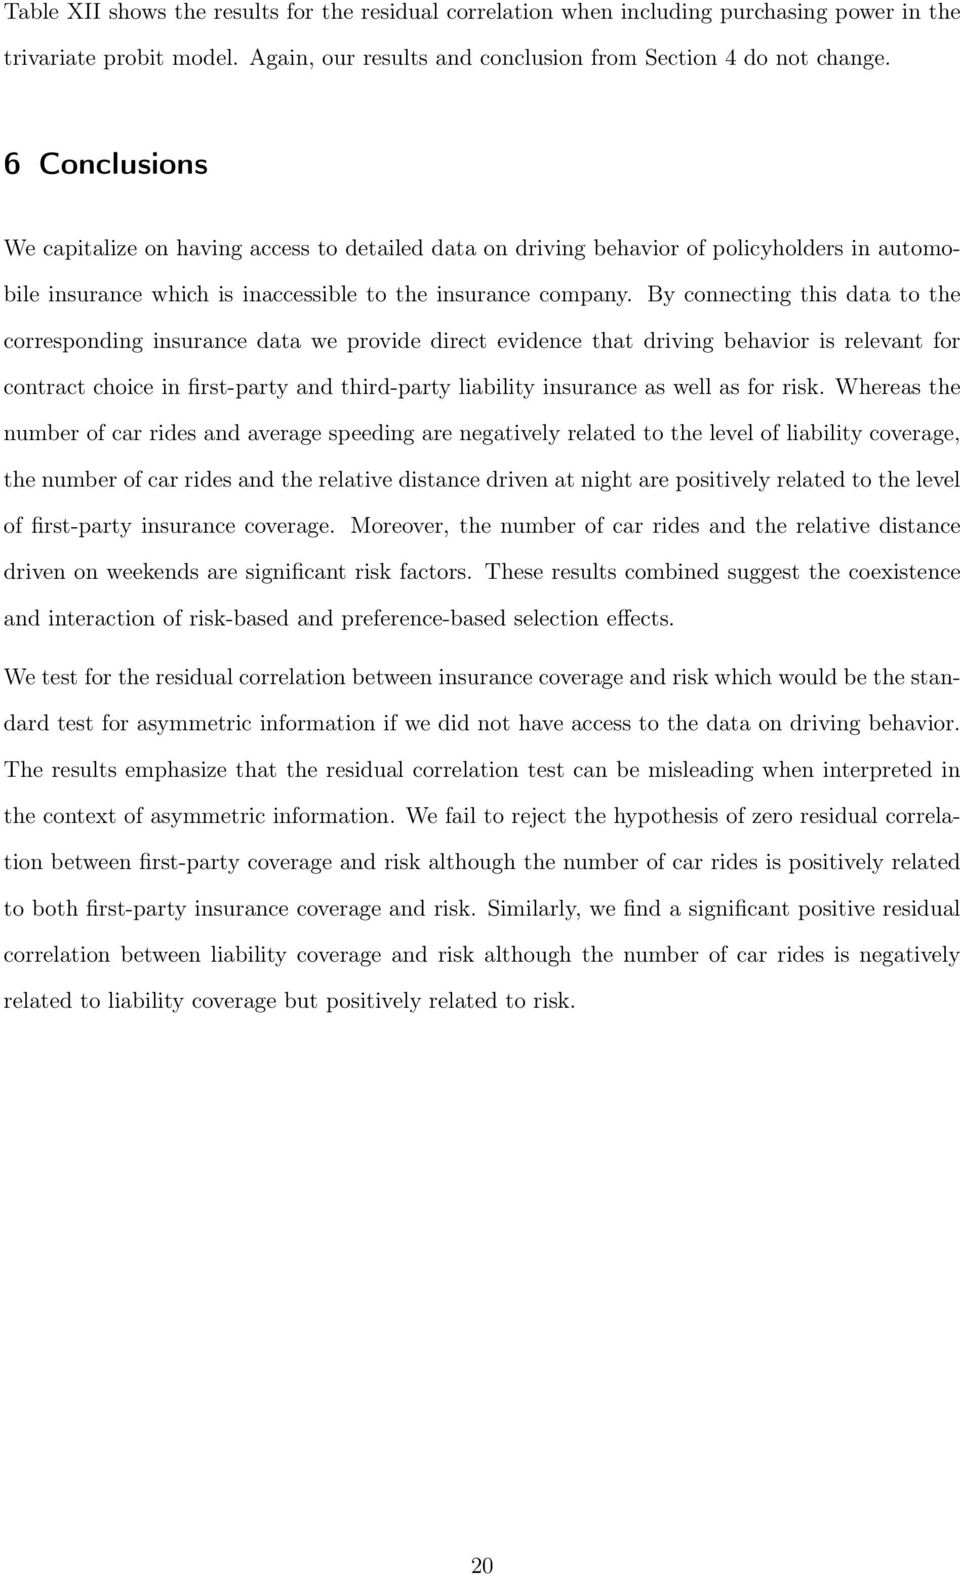 By connecting this data to the corresponding insurance data we provide direct evidence that driving behavior is relevant for contract choice in first-party and third-party liability insurance as well